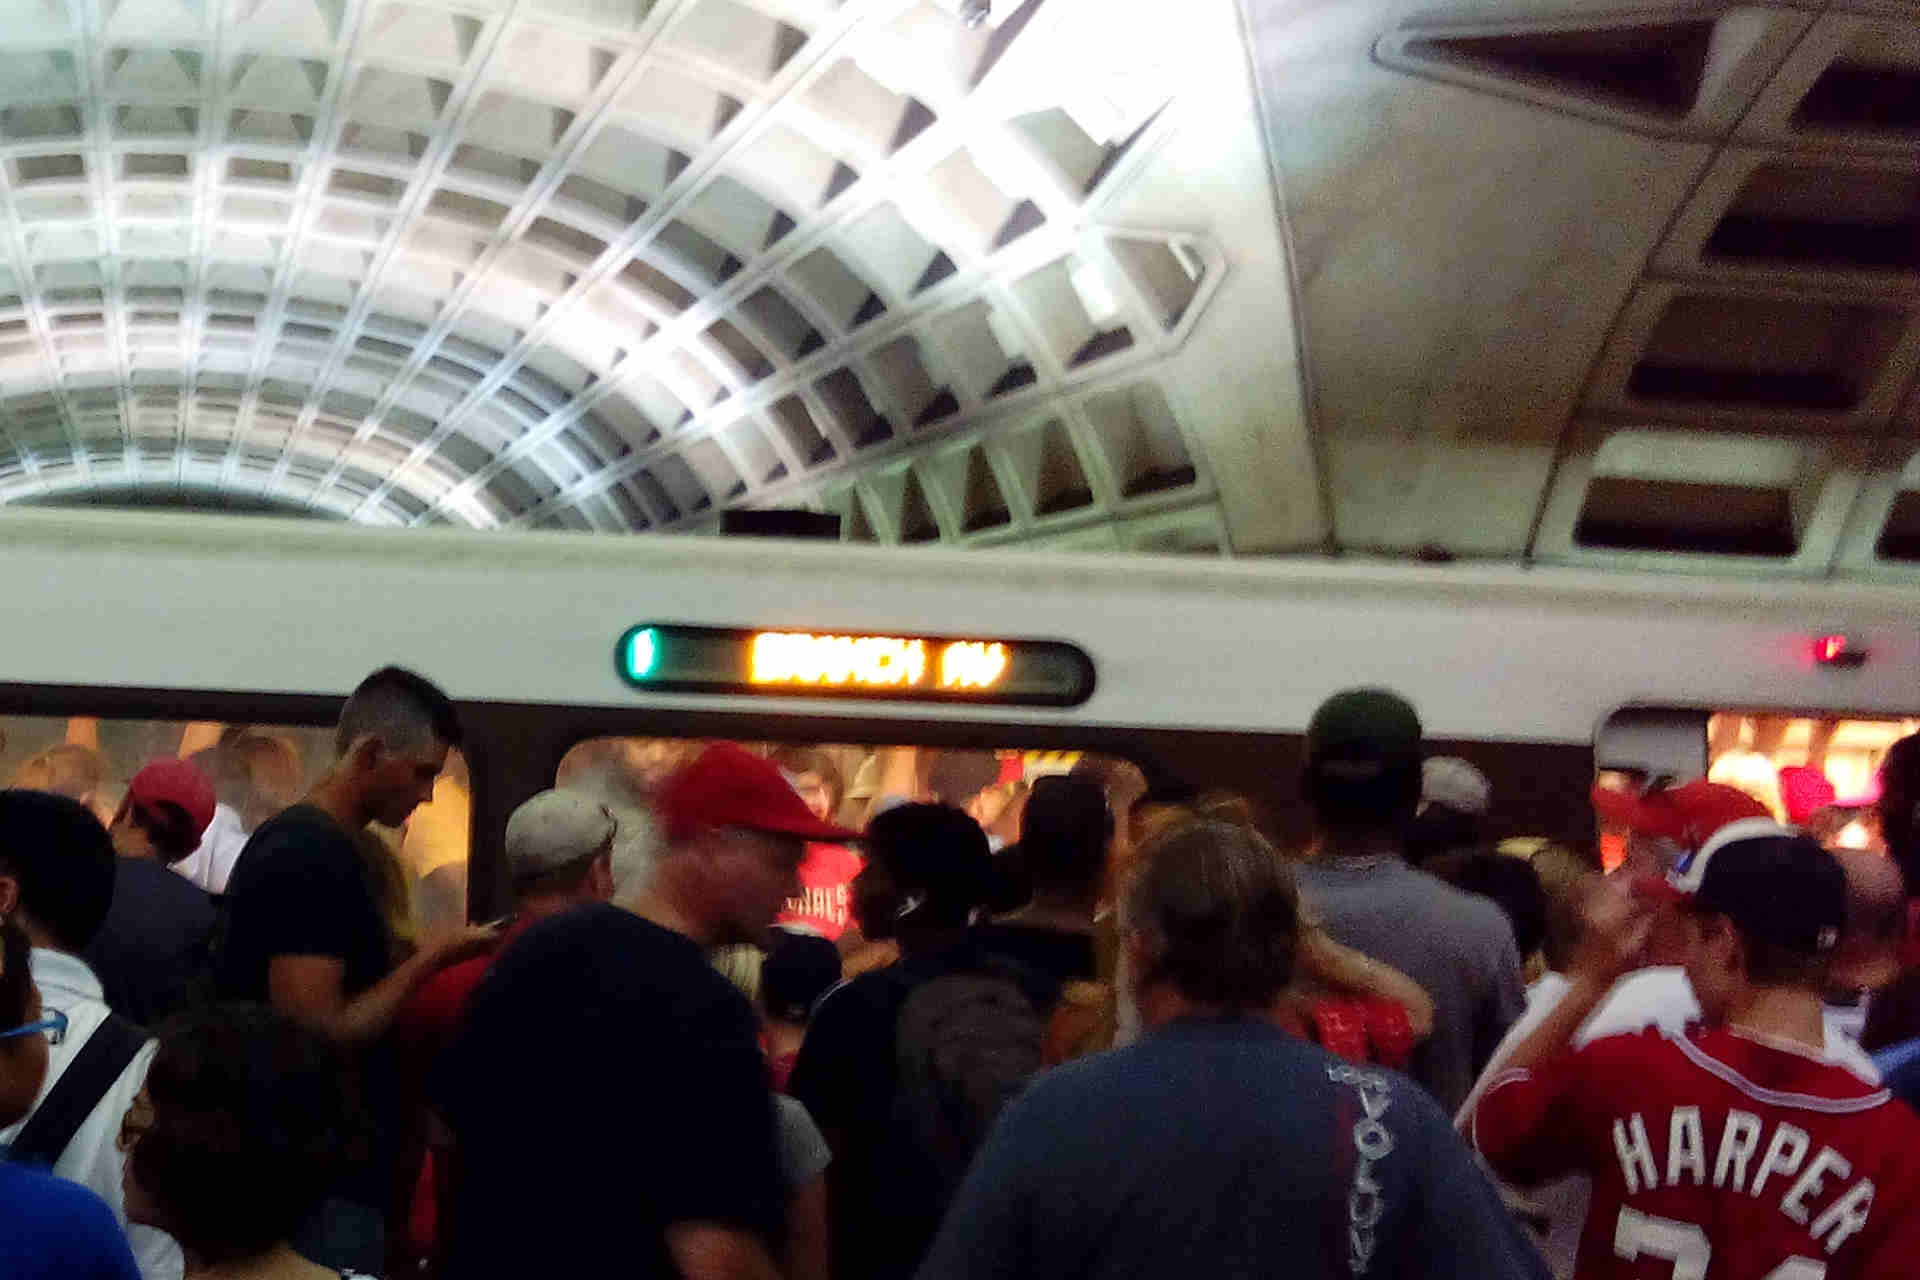 Crowded DC Metro Station